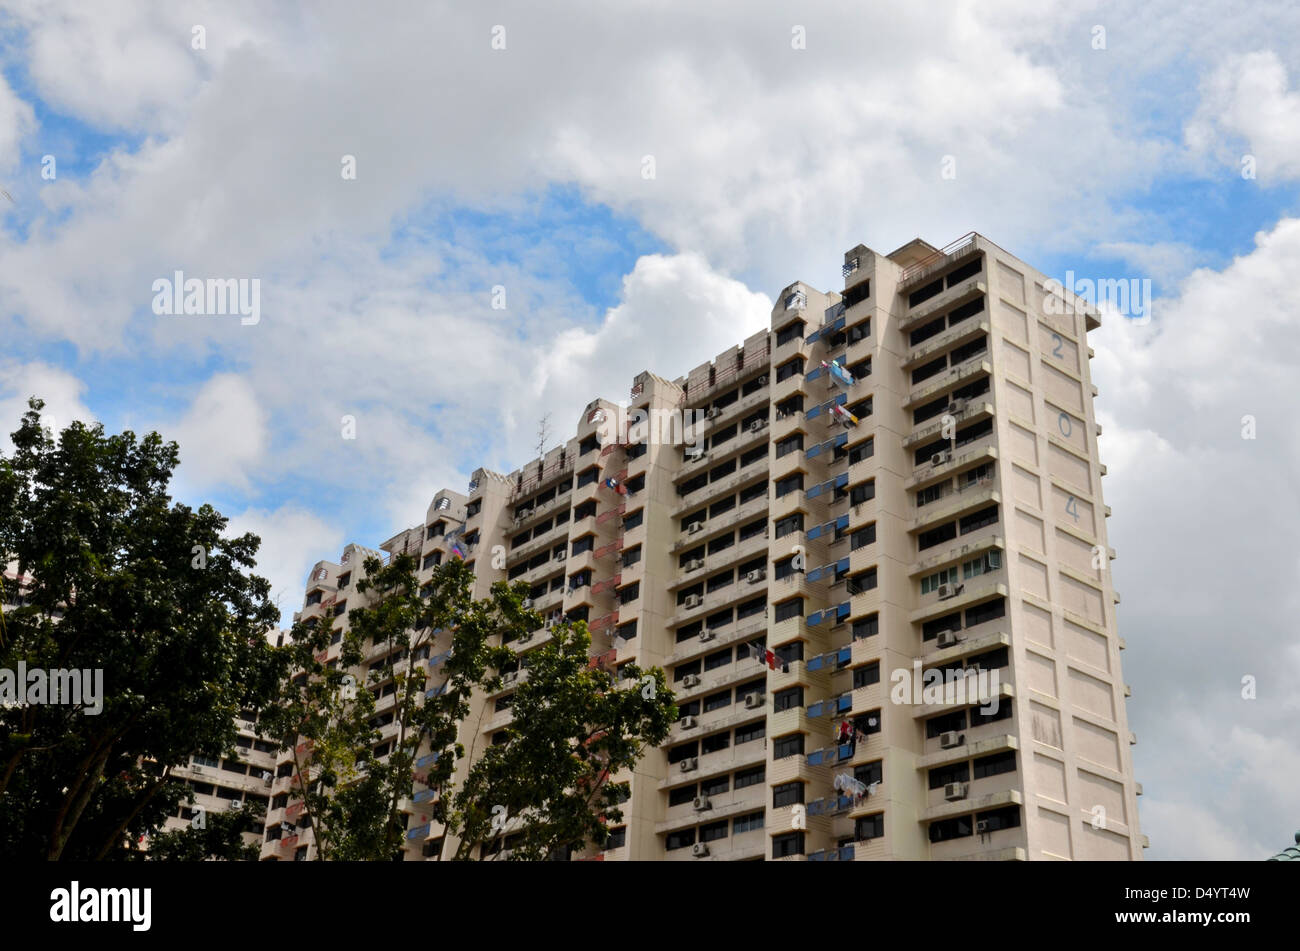 Apartment building clear blue sky - Stock Image